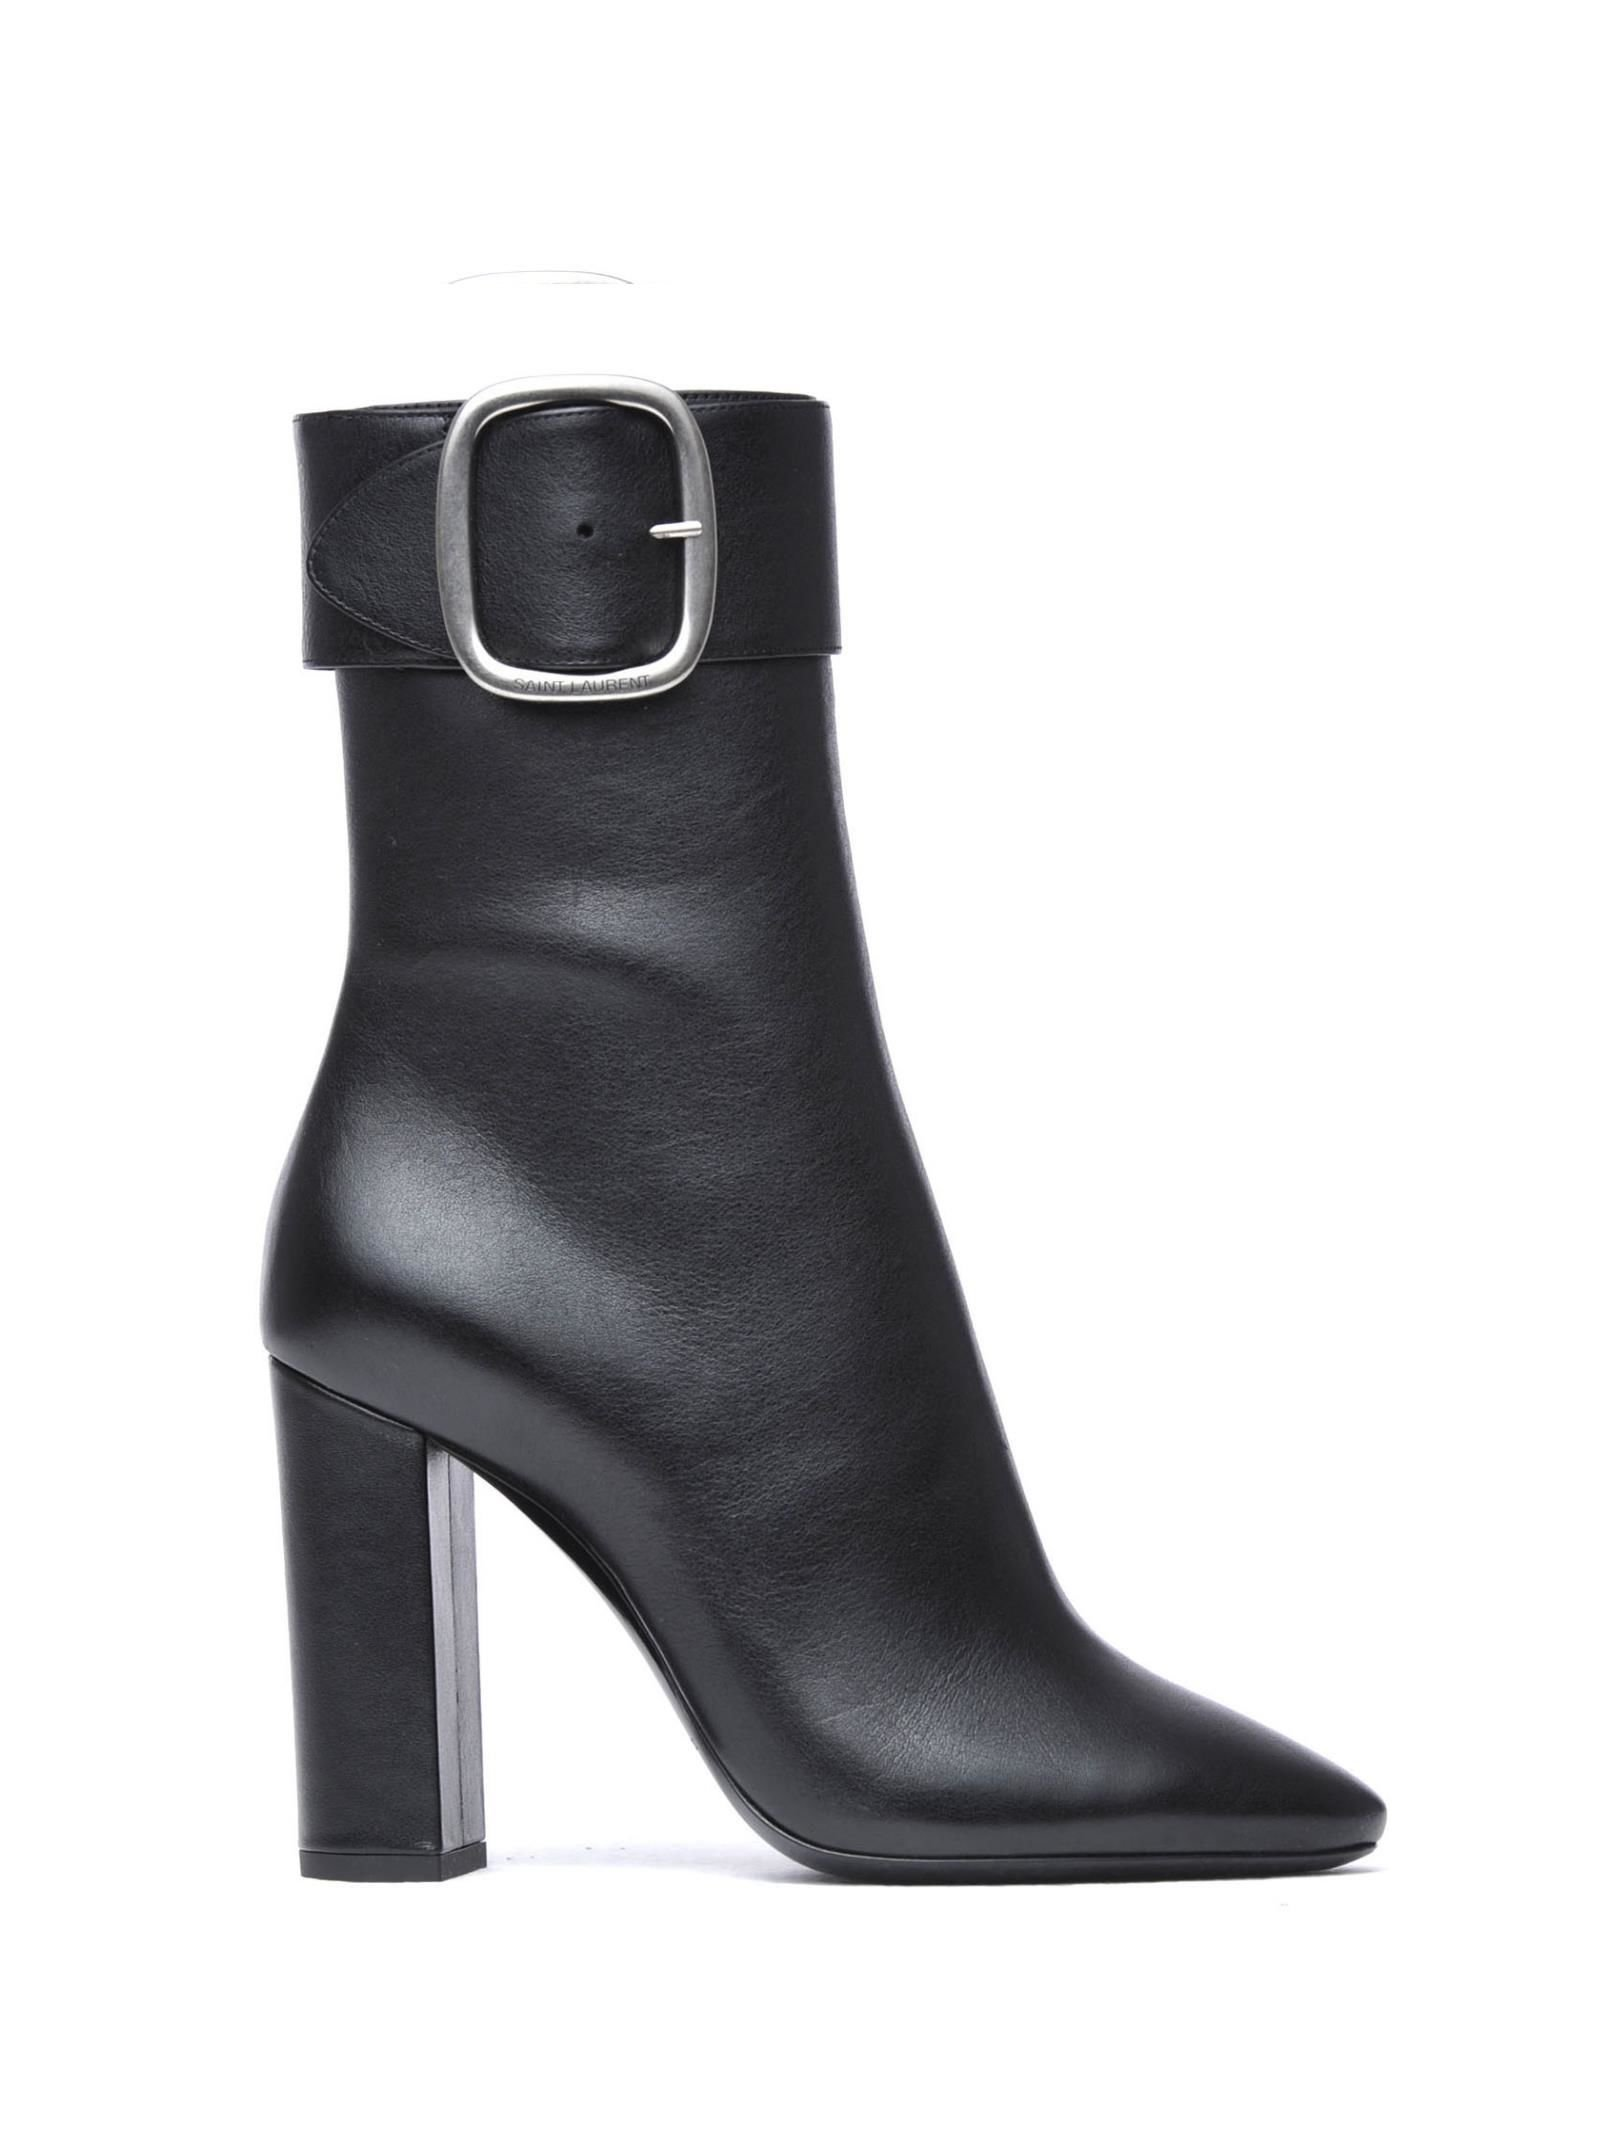 Saint Laurent Joplin Buckle Ankle Boots